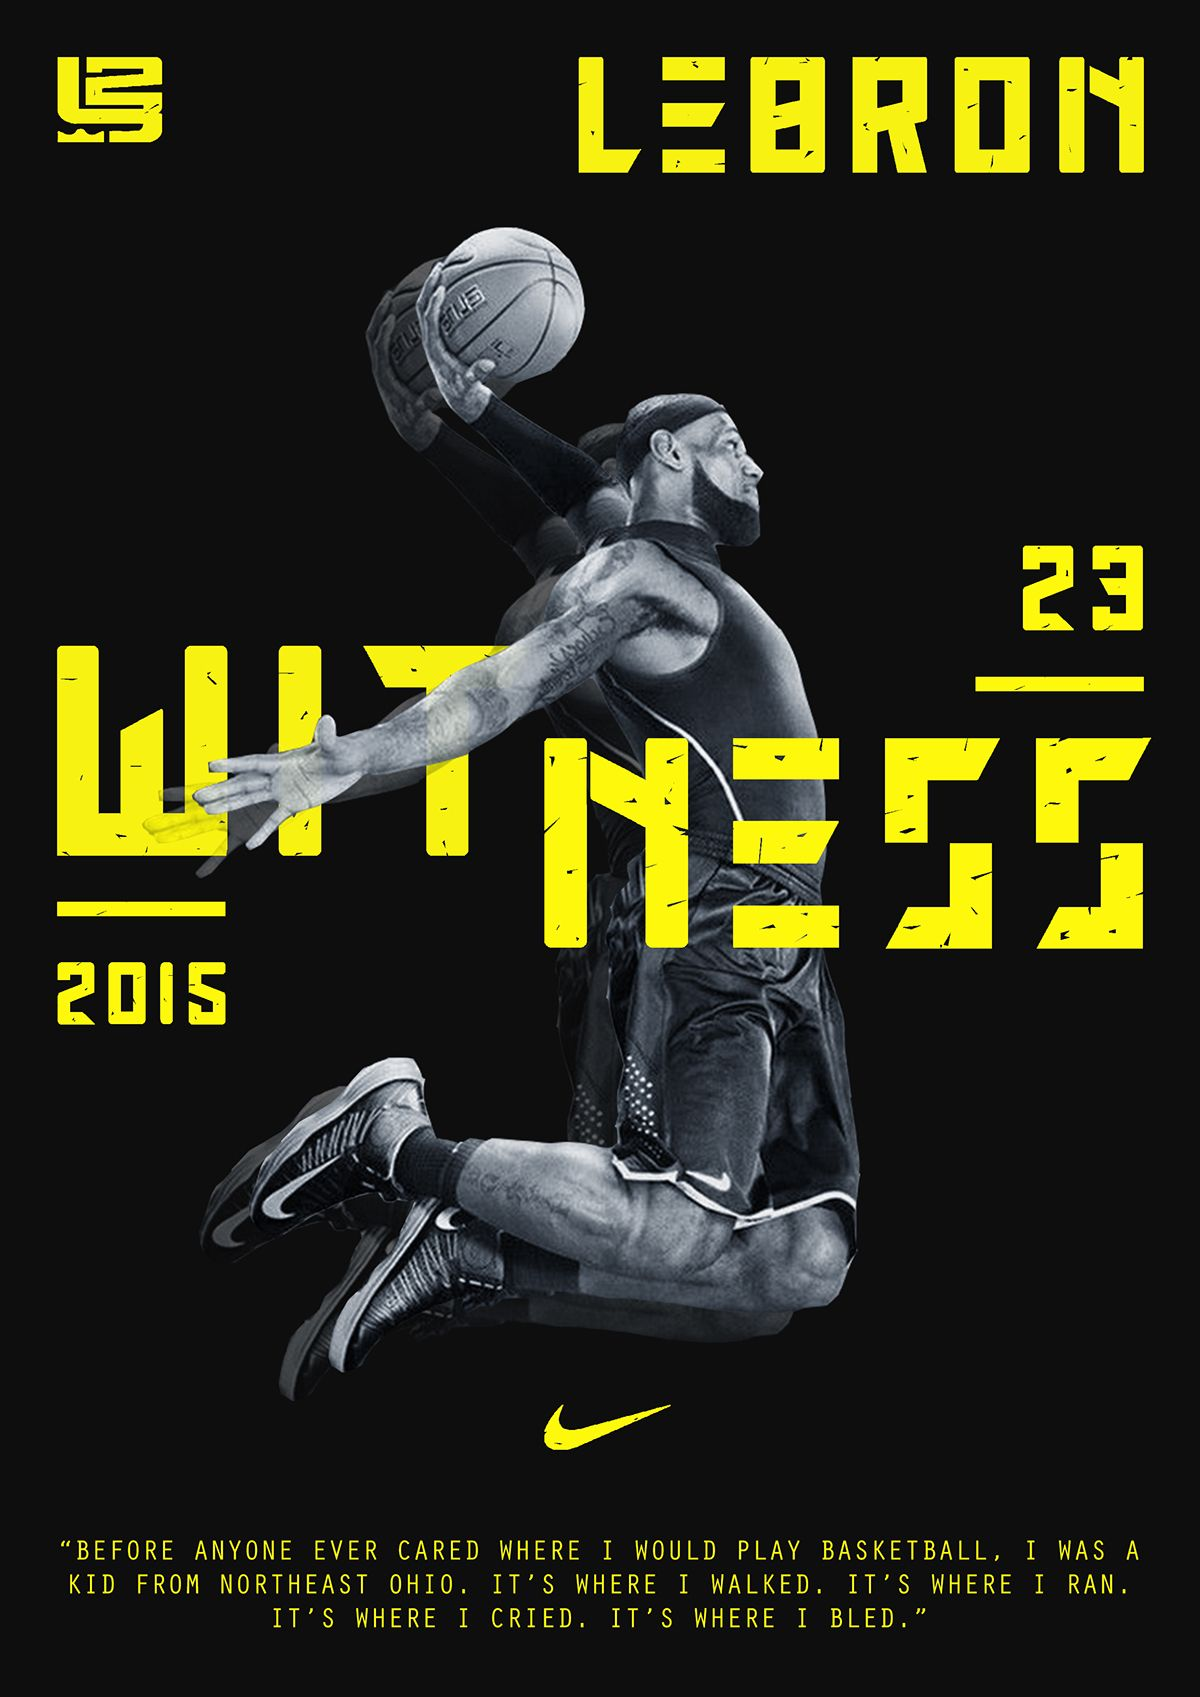 LeBron James x Nike 'Witness' Campaign Sports design